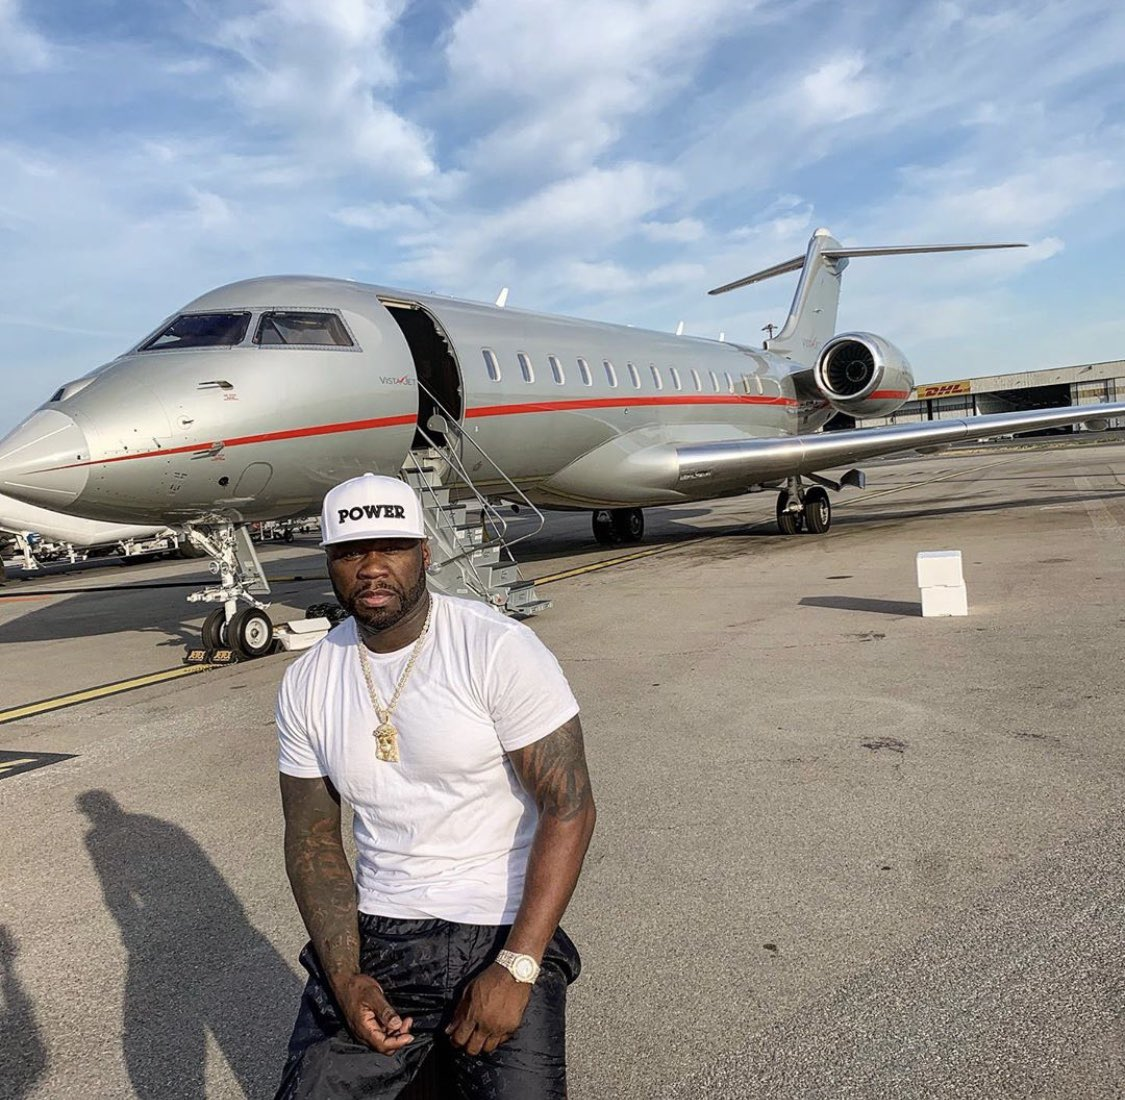 On the move again POWER Seasons 6 you know the Vibes. #lecheminduroi #bransoncognac https://t.co/Weze8Unjnh